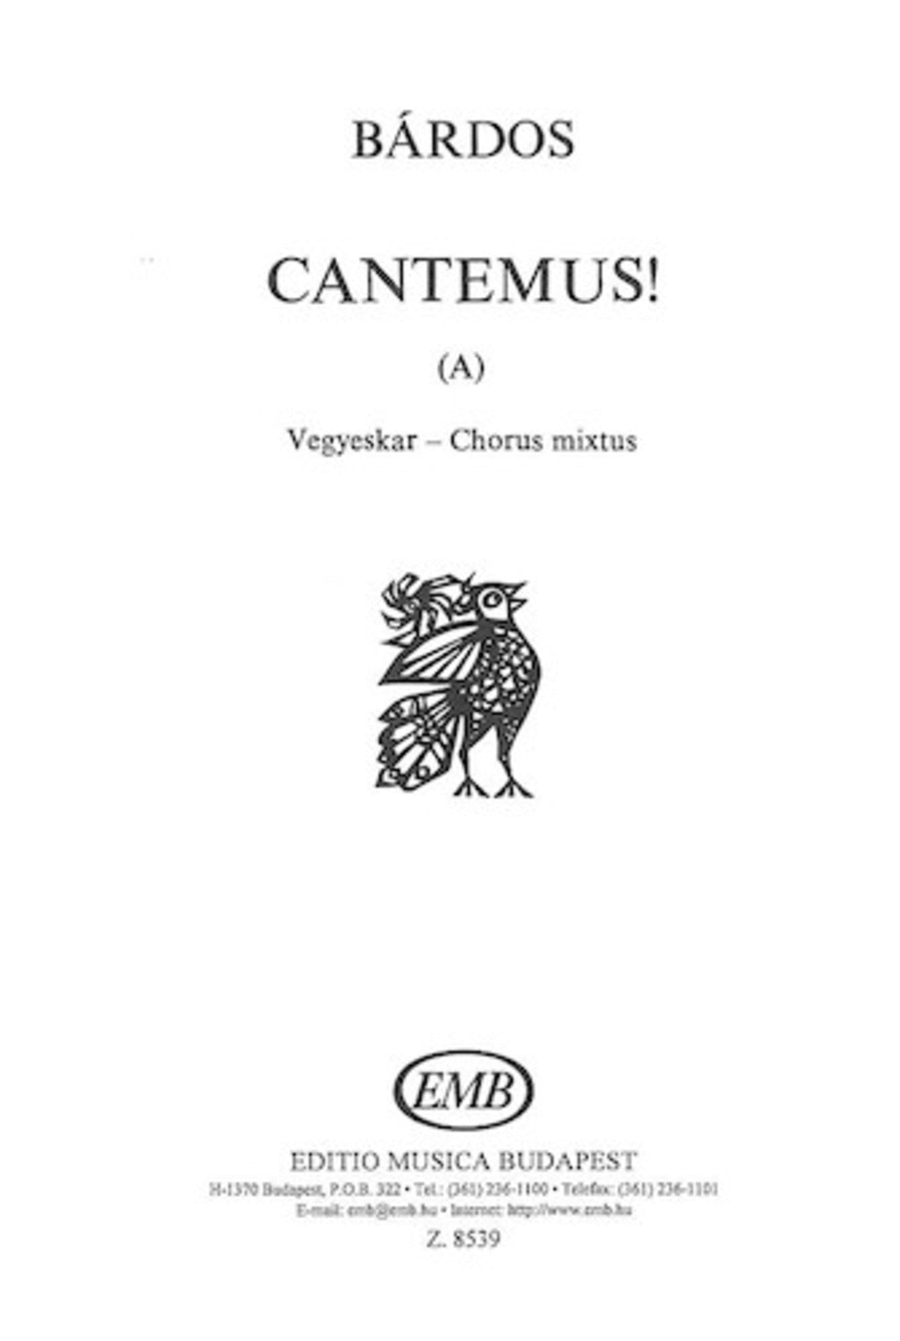 Cantemus (A) (to words by the composer)